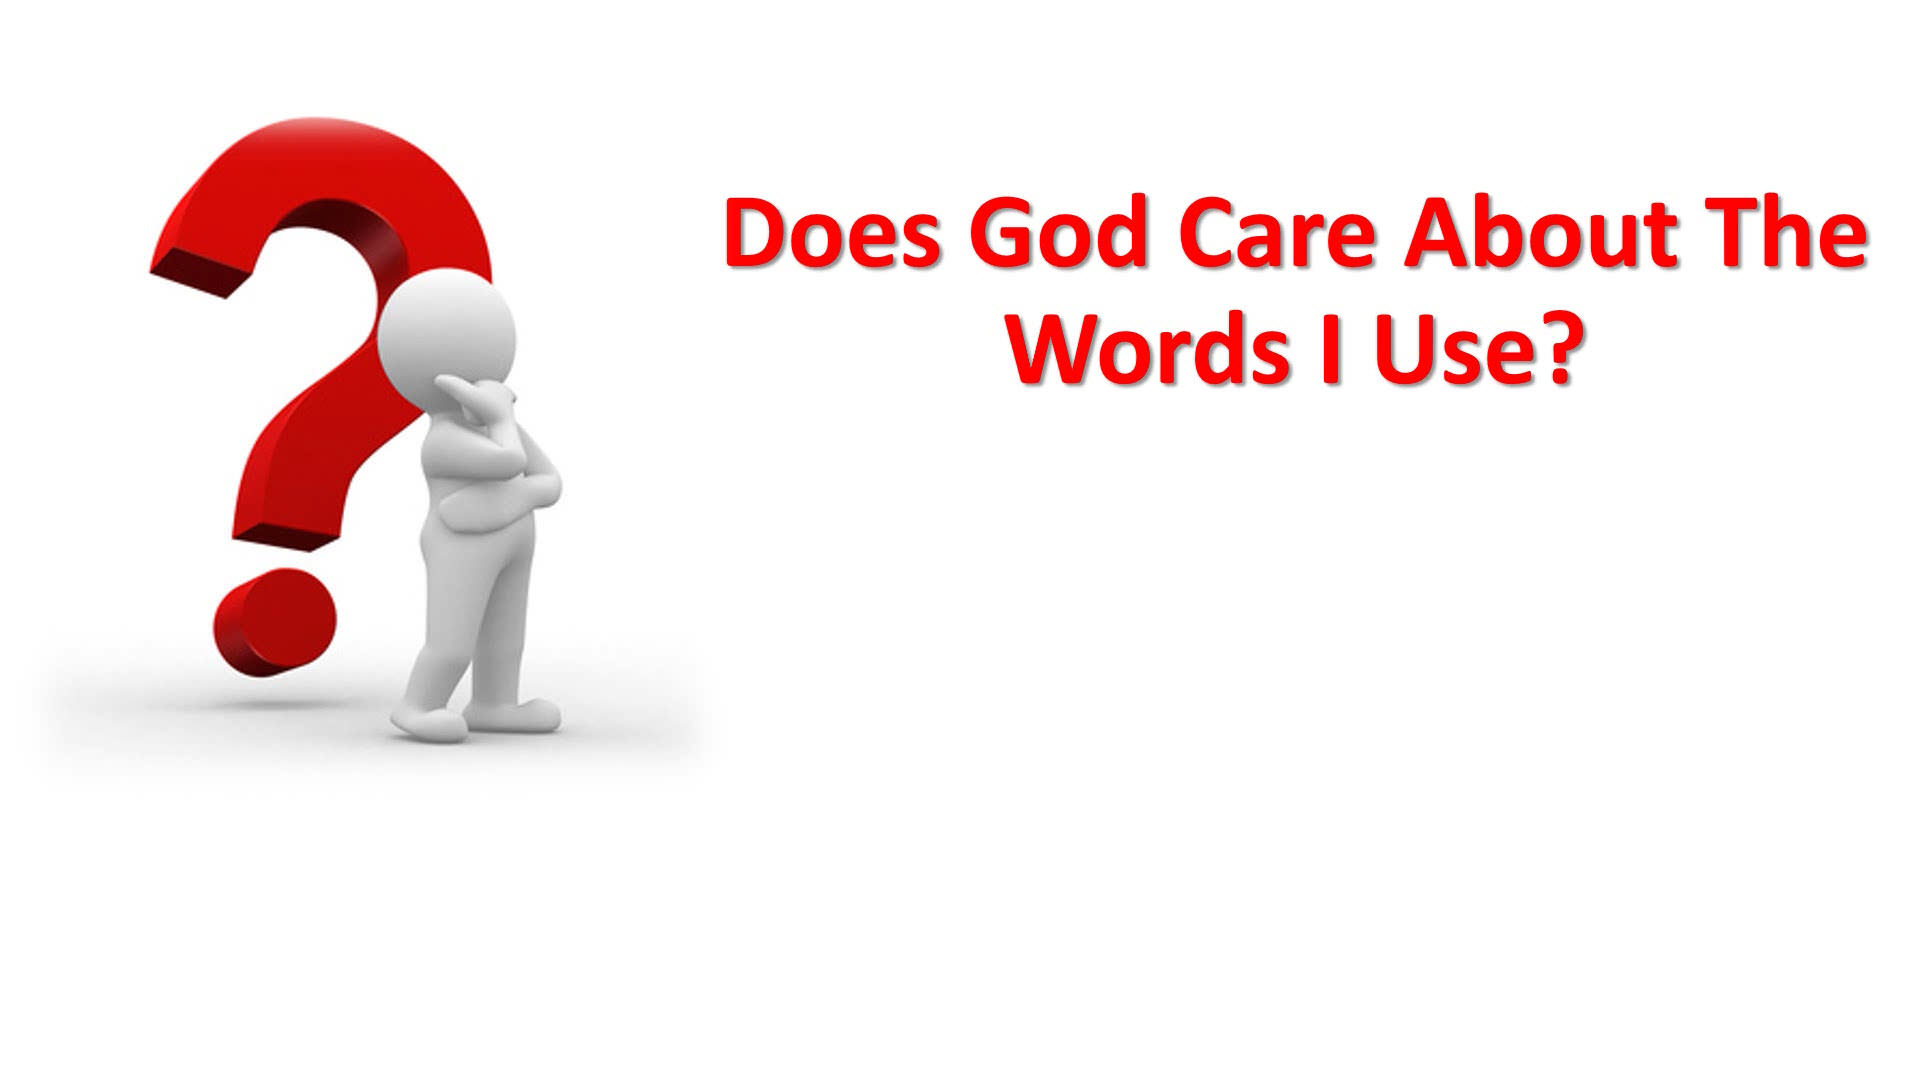 Does God Care About The Words I Use?